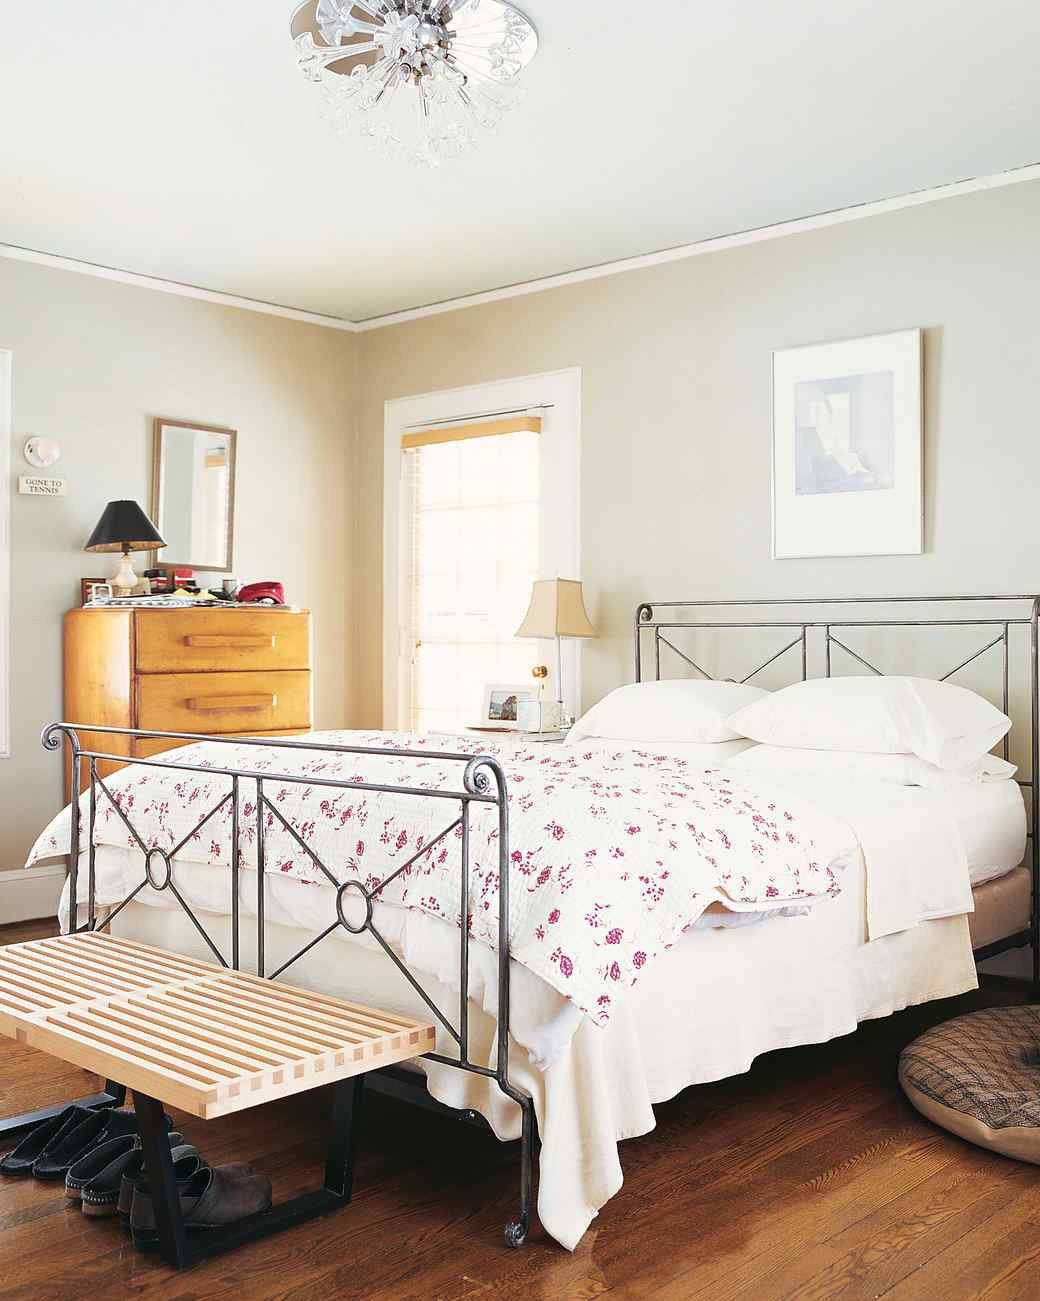 Best Bright Ideas For A Budget Friendly Master Bedroom Makeover With Pictures